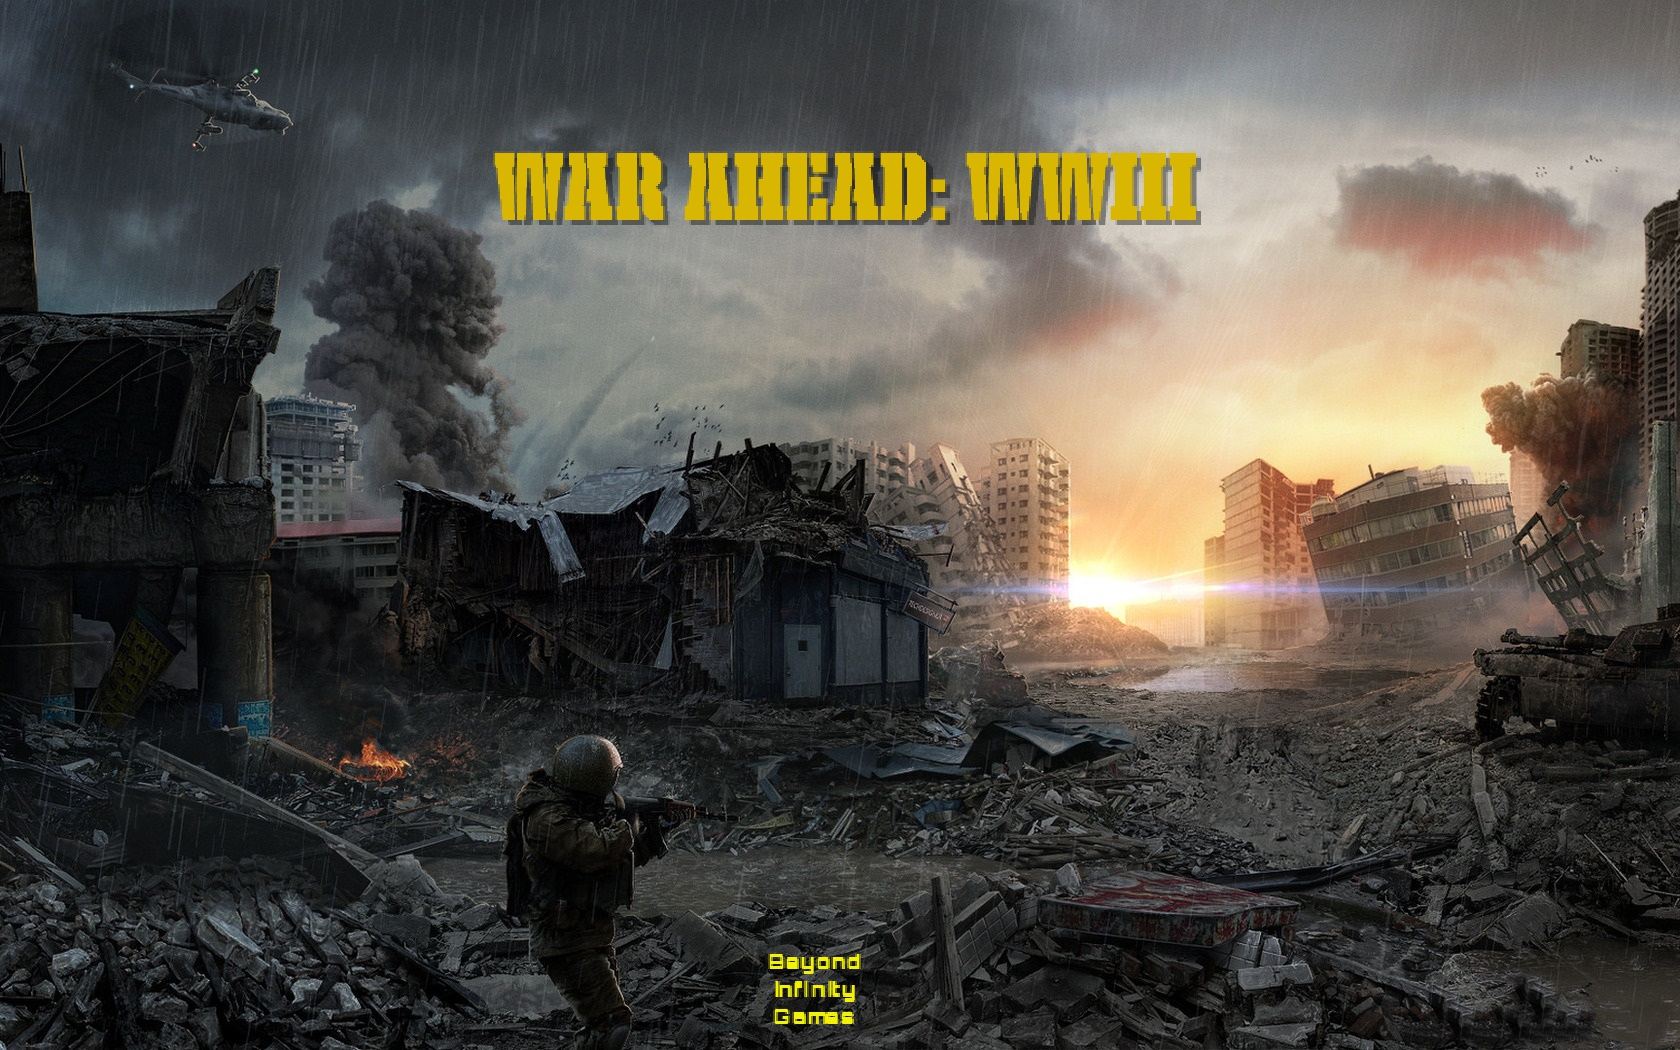 War Ahead: WW III